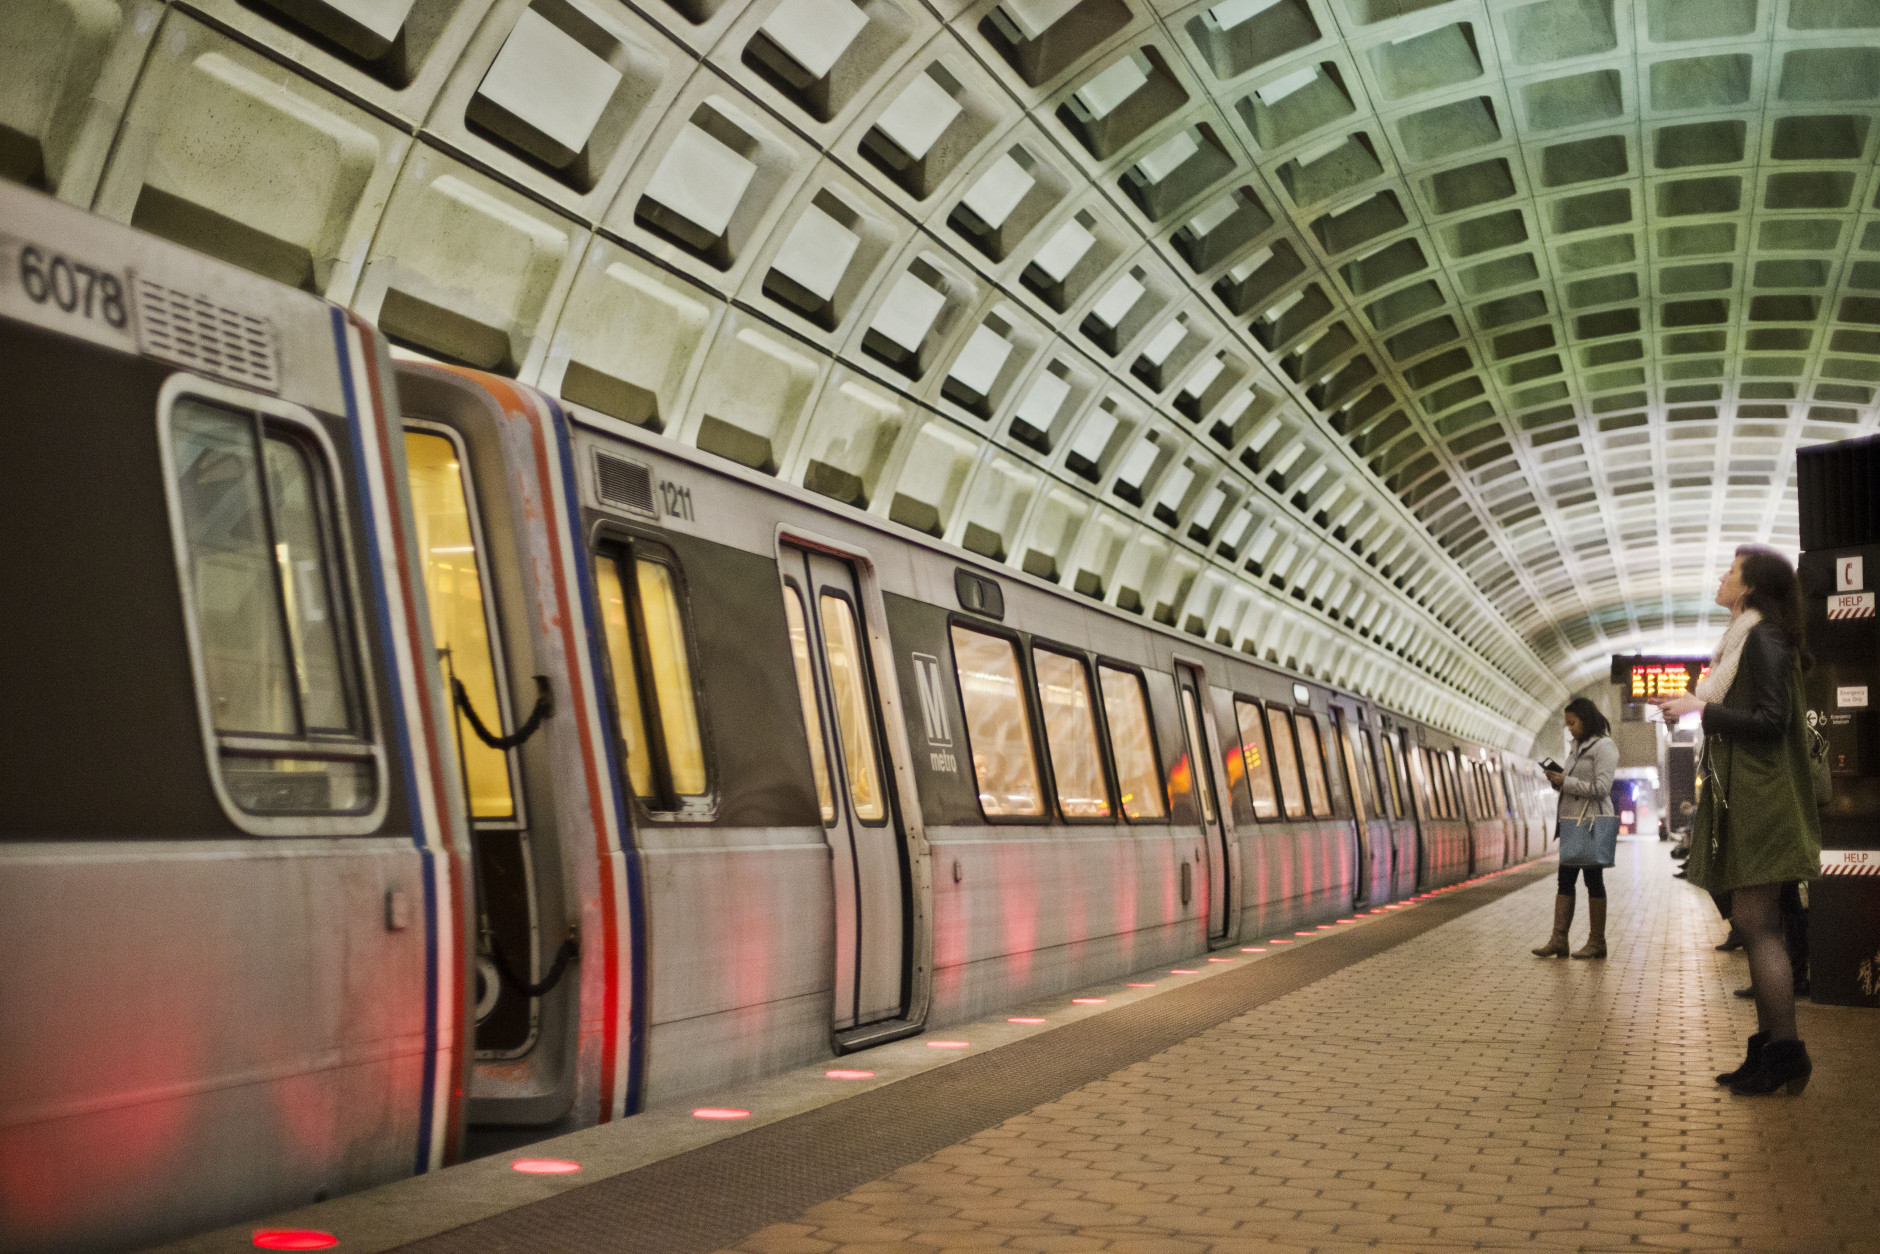 Metro selects general manager candidate